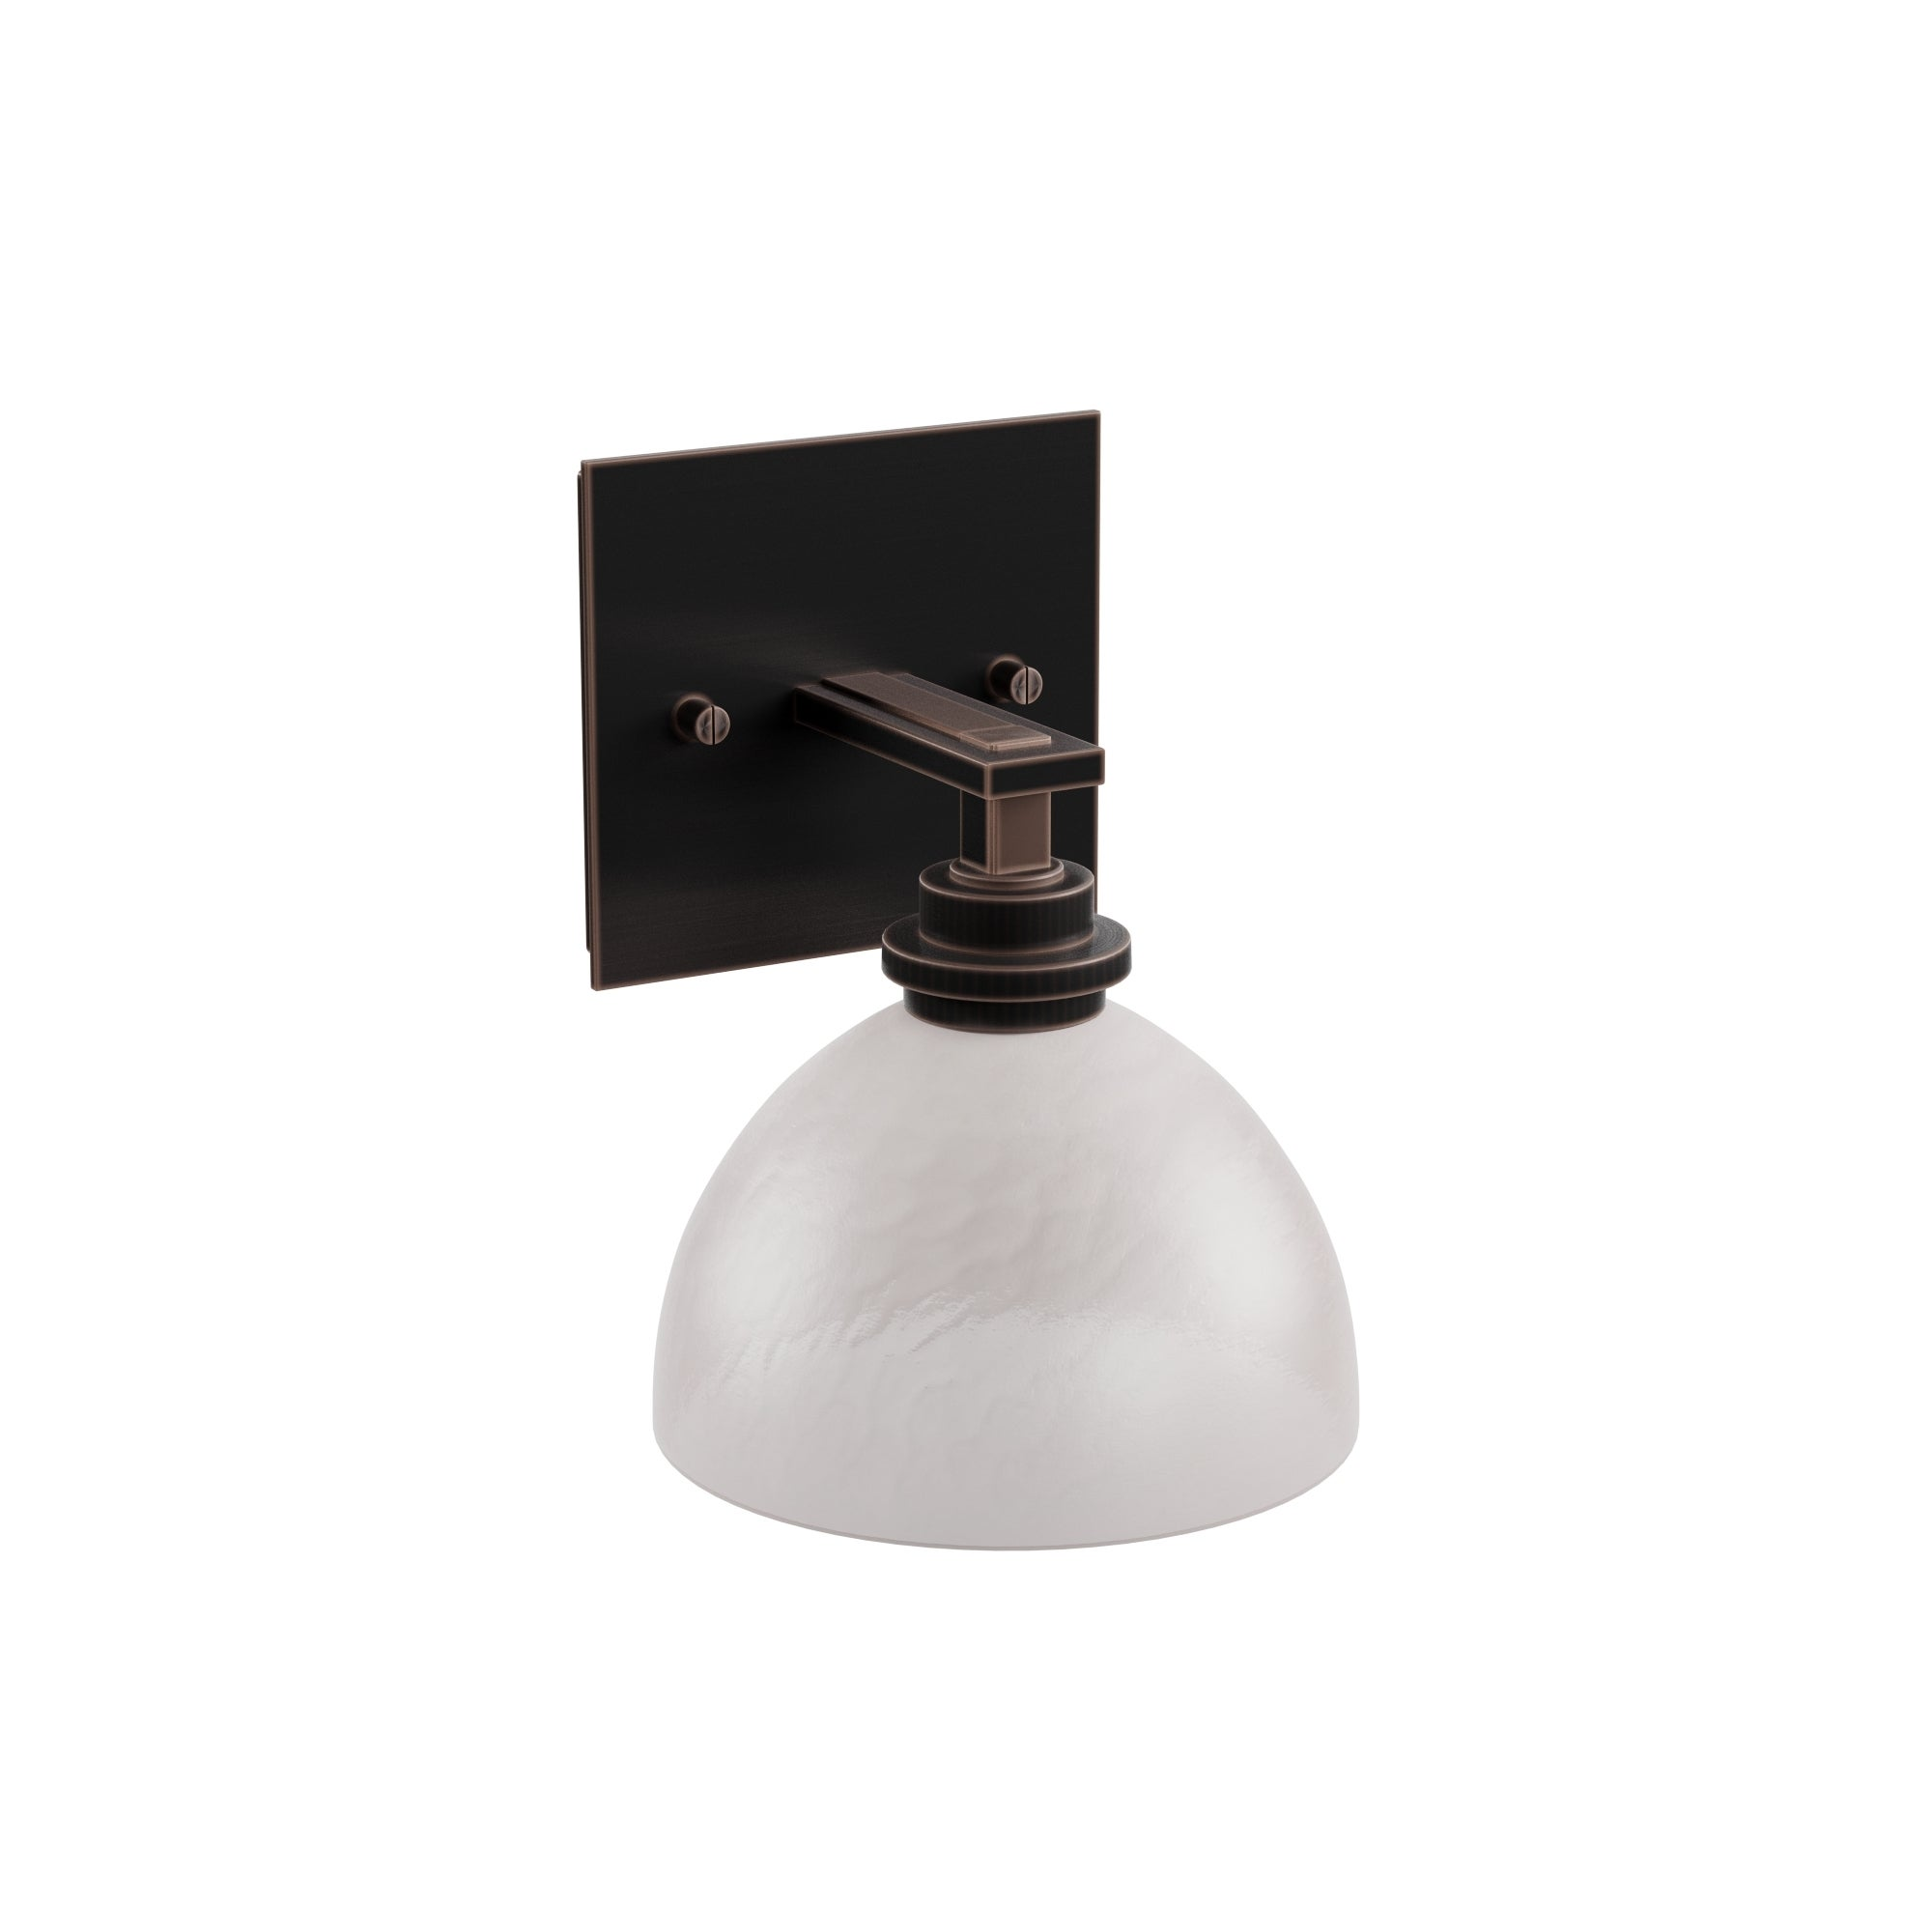 Copper Grove Edelweiss 1 Light Oil Rubbed Bronze Wall Sconce Ebay